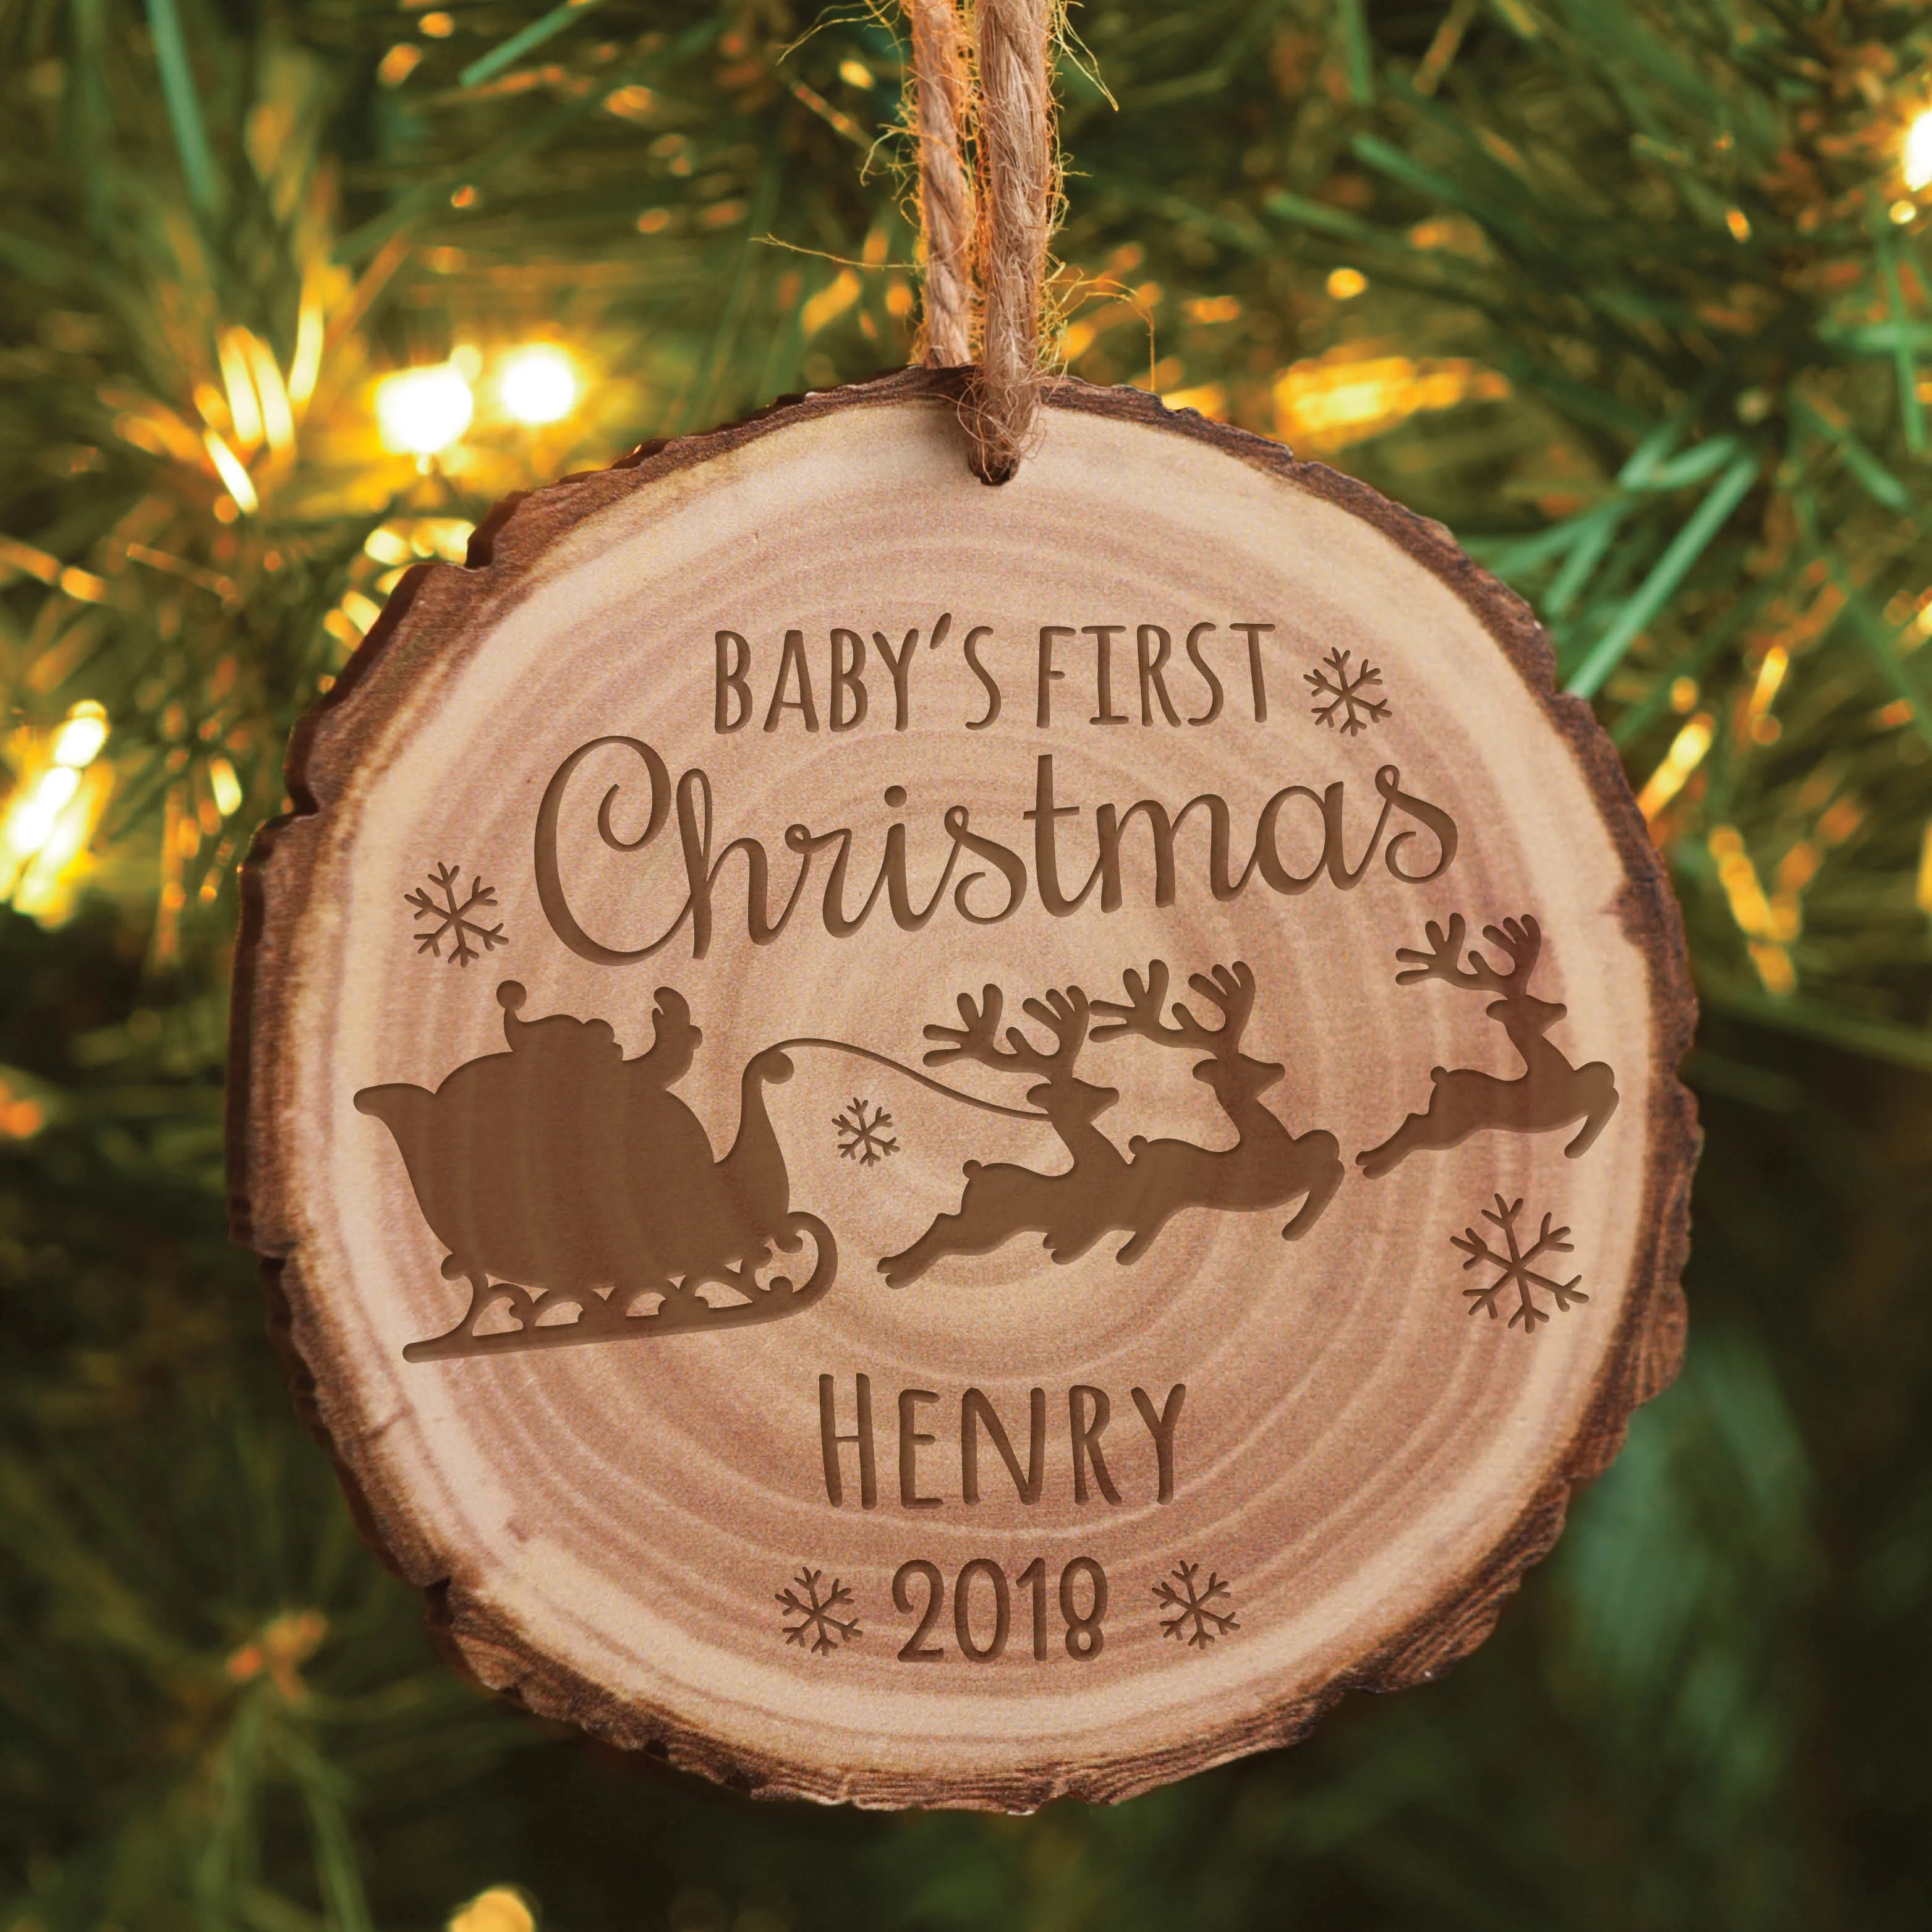 Babys First Christmas Ornaments Personalized